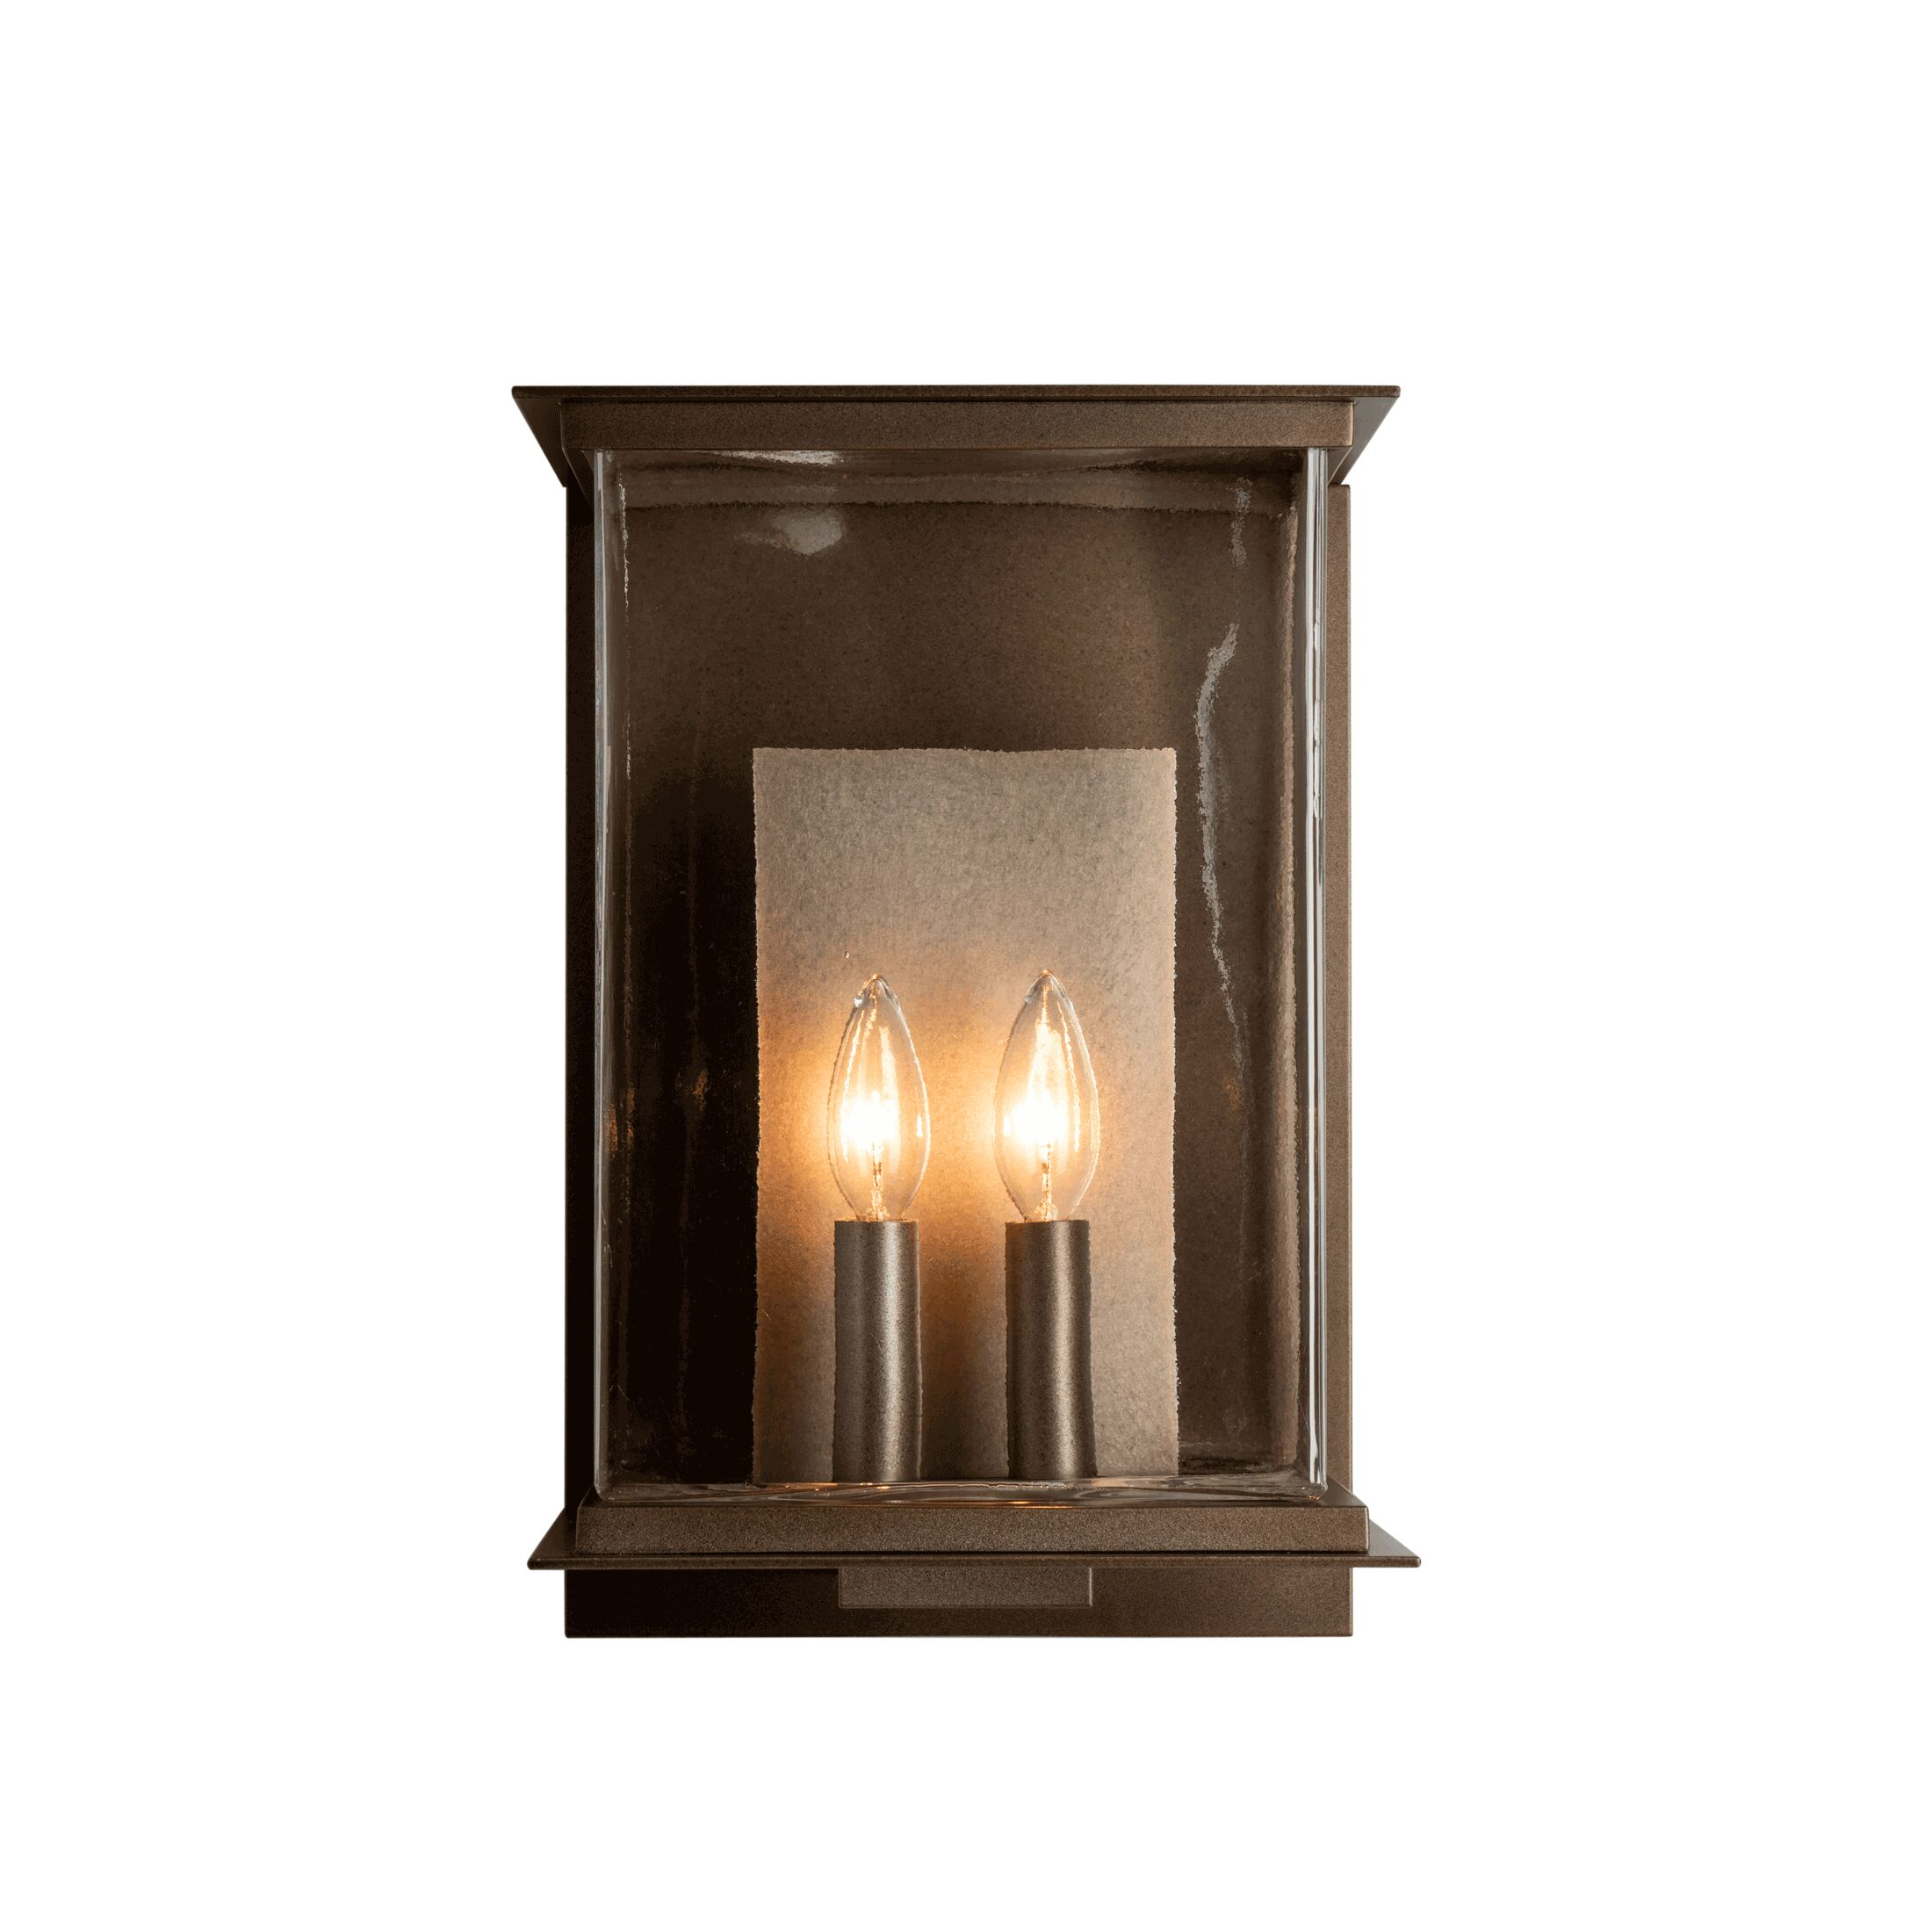 Thumbnail for Kingston Outdoor Large Sconce